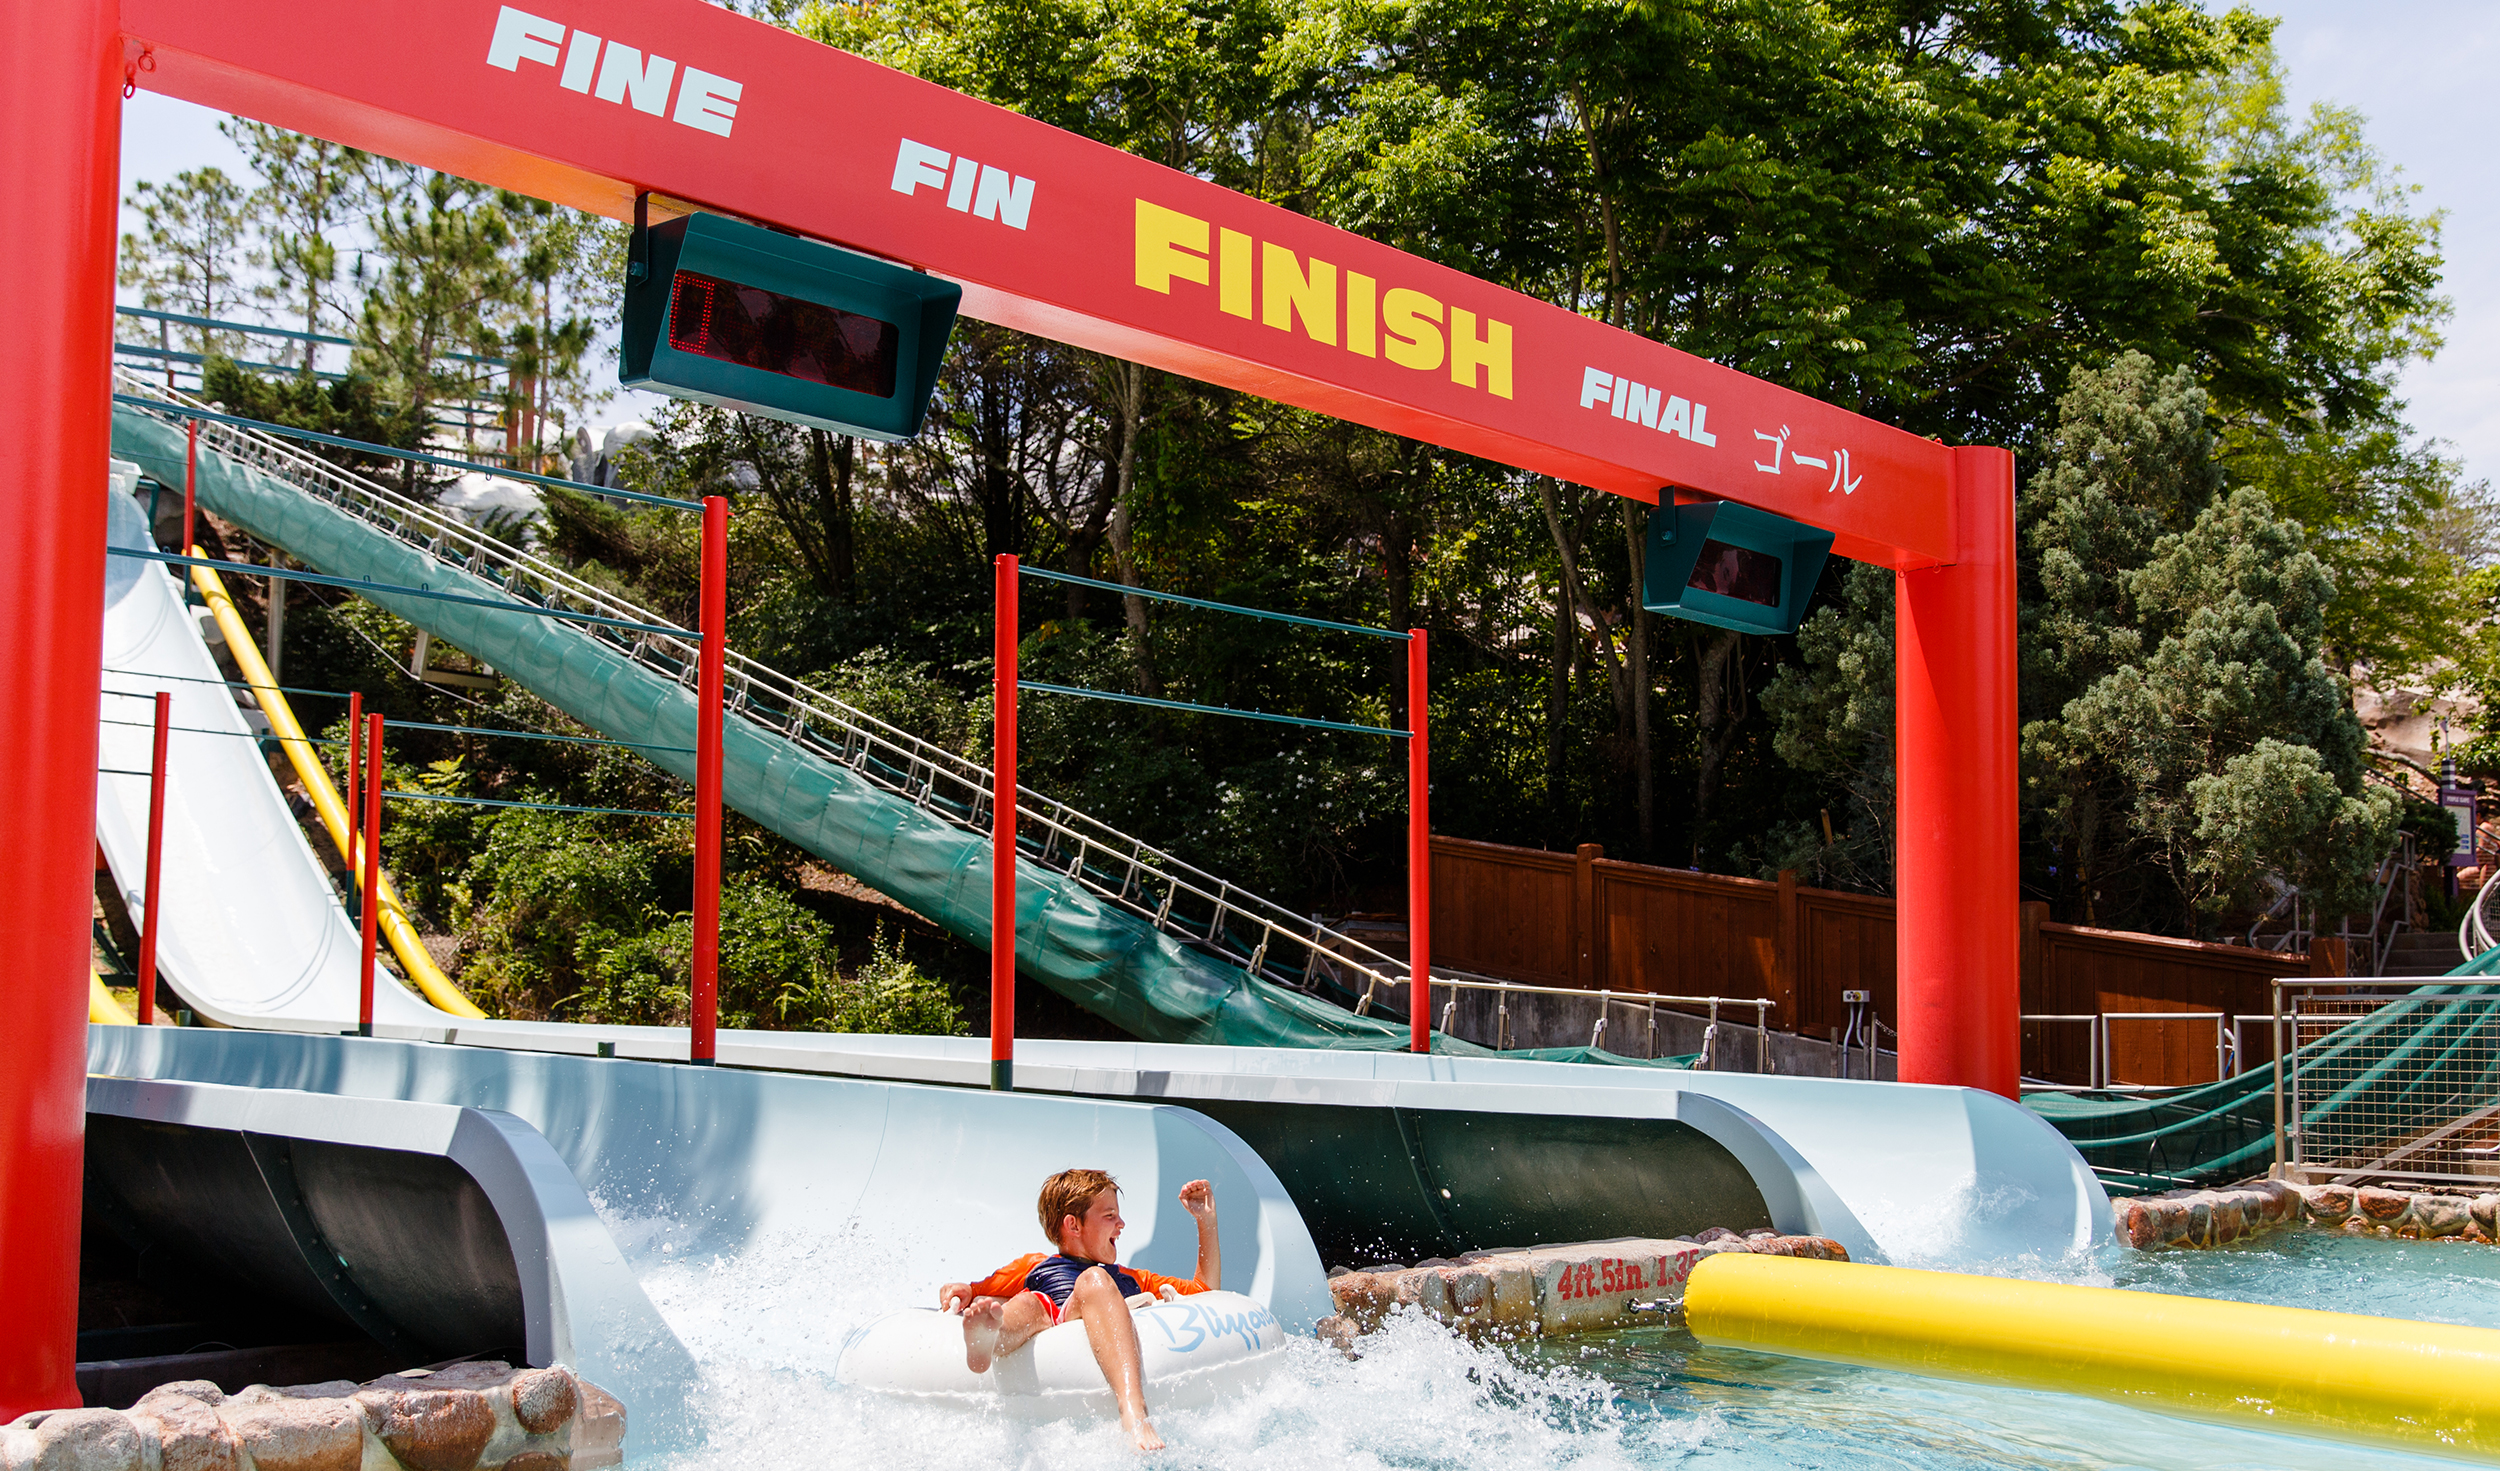 Excited boy on inner tube crosses finish line on the Downhill Double Dipper, a side-by-side waterslide.